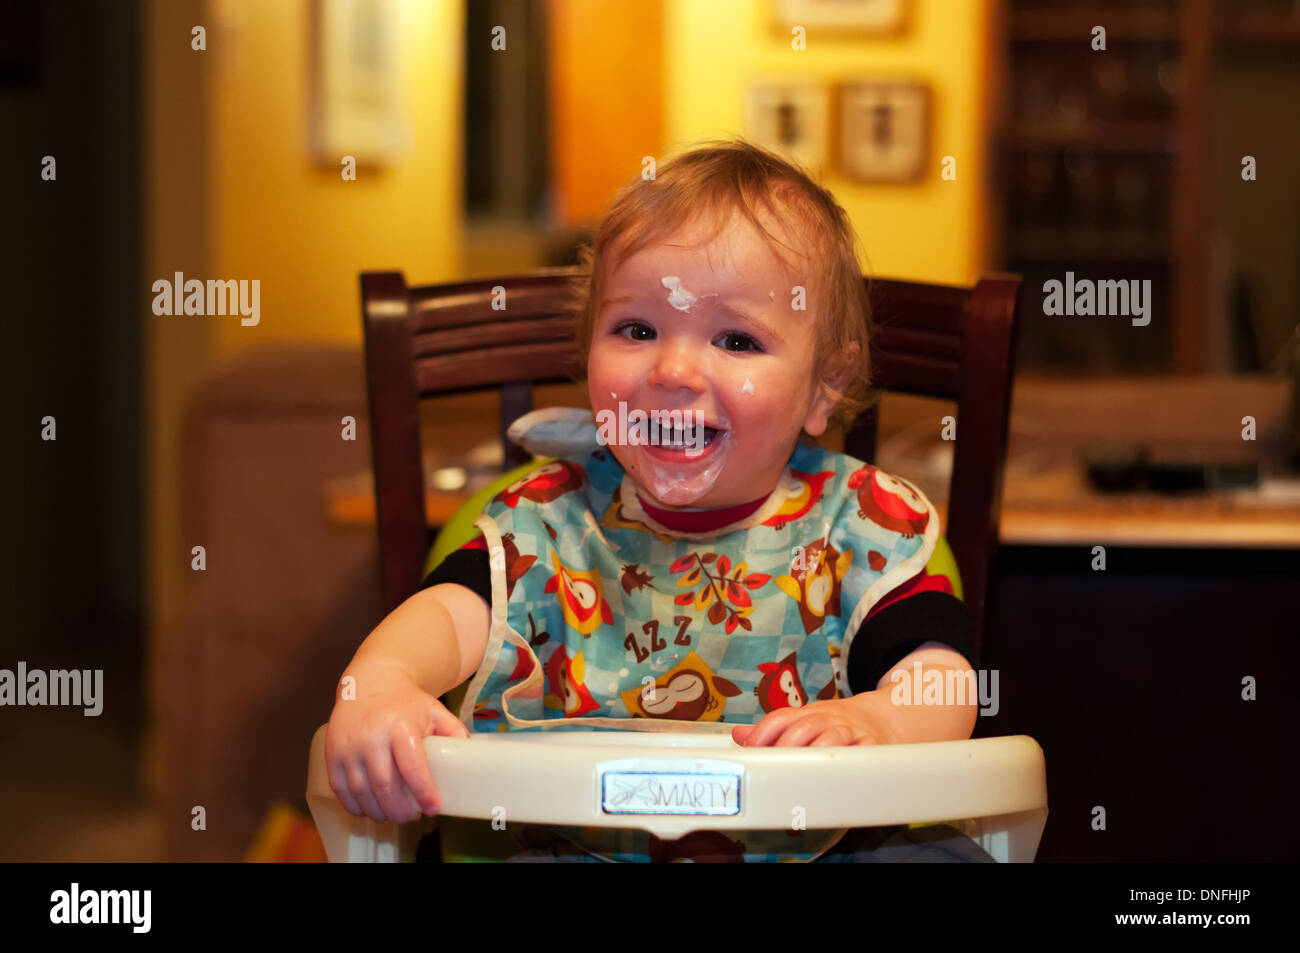 A laughing baby boy with yoghurt on his face - Stock Image